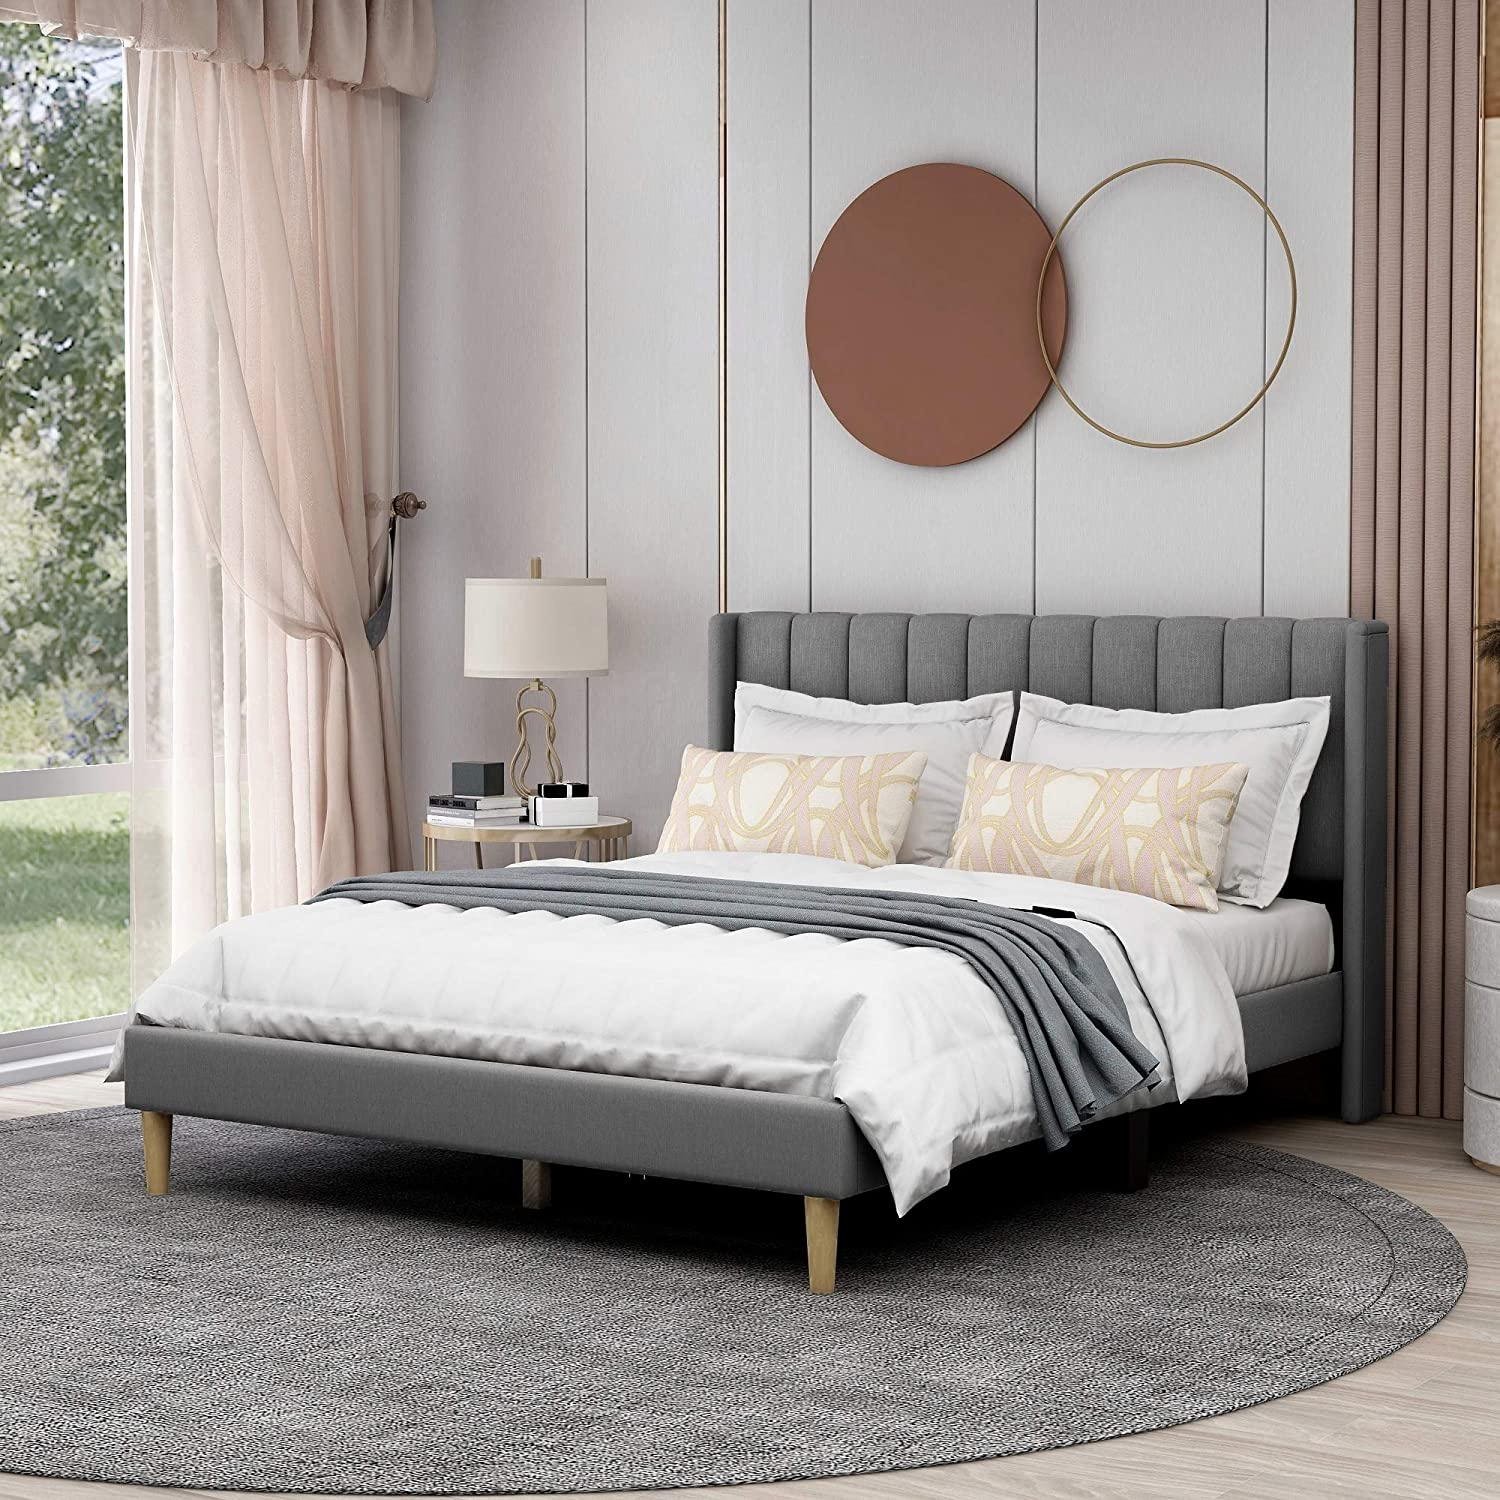 Upholstered Platform Bed Frame Queen Size with Headboard and Footboard/Wooden Slats Support/No Box Spring Needed/Easy Assembly,Grey